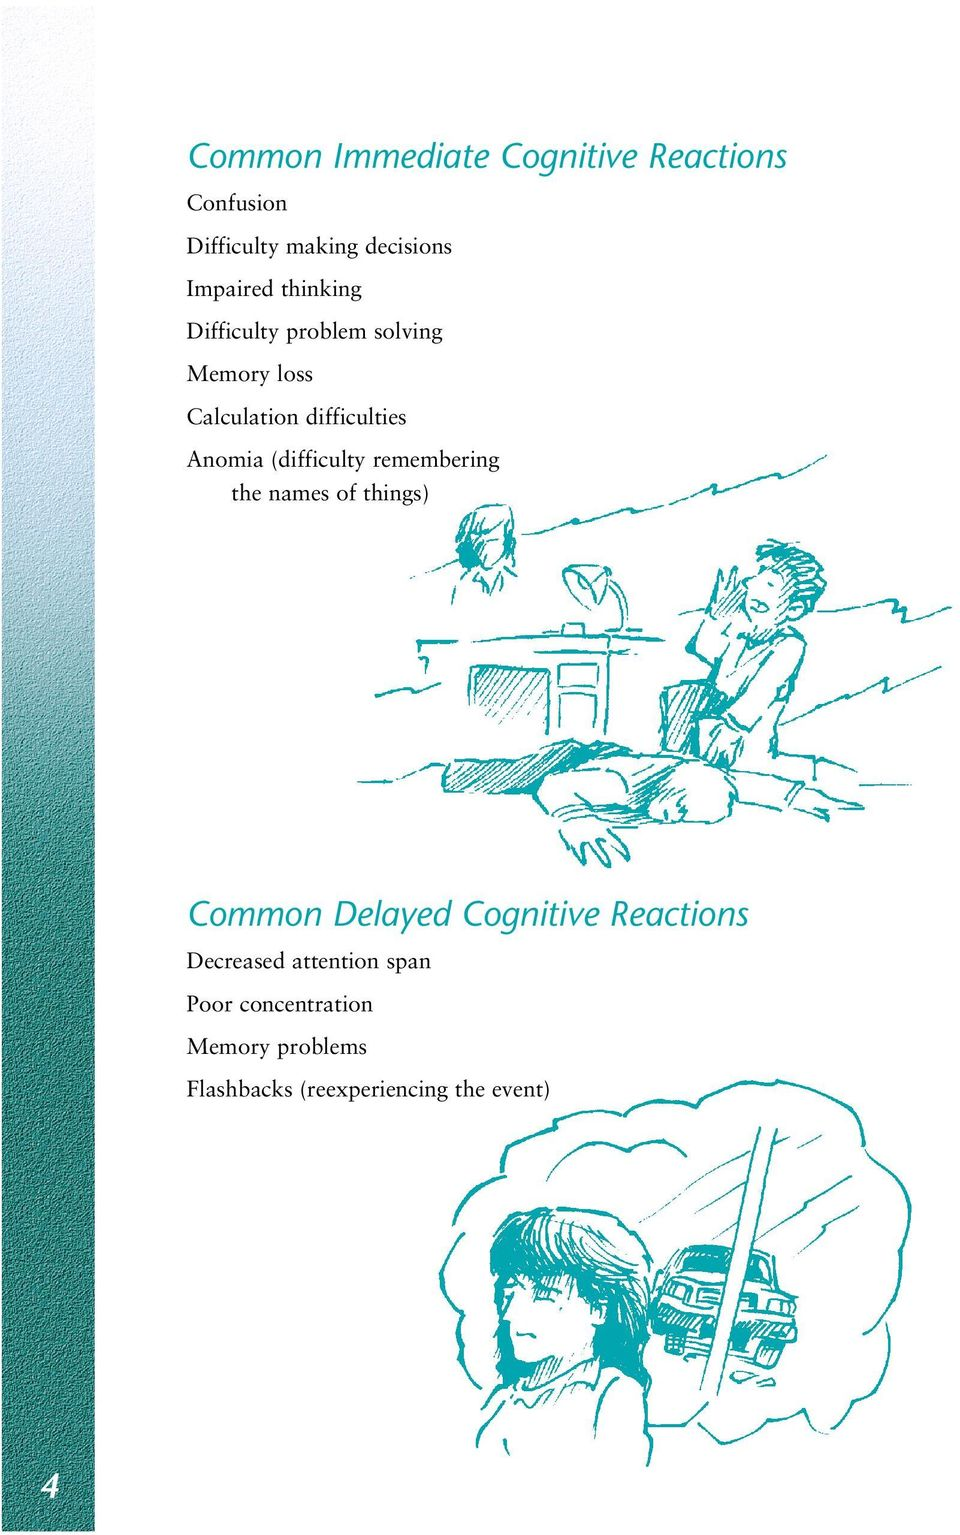 (difficulty remembering the names of things) Common Delayed Cognitive Reactions